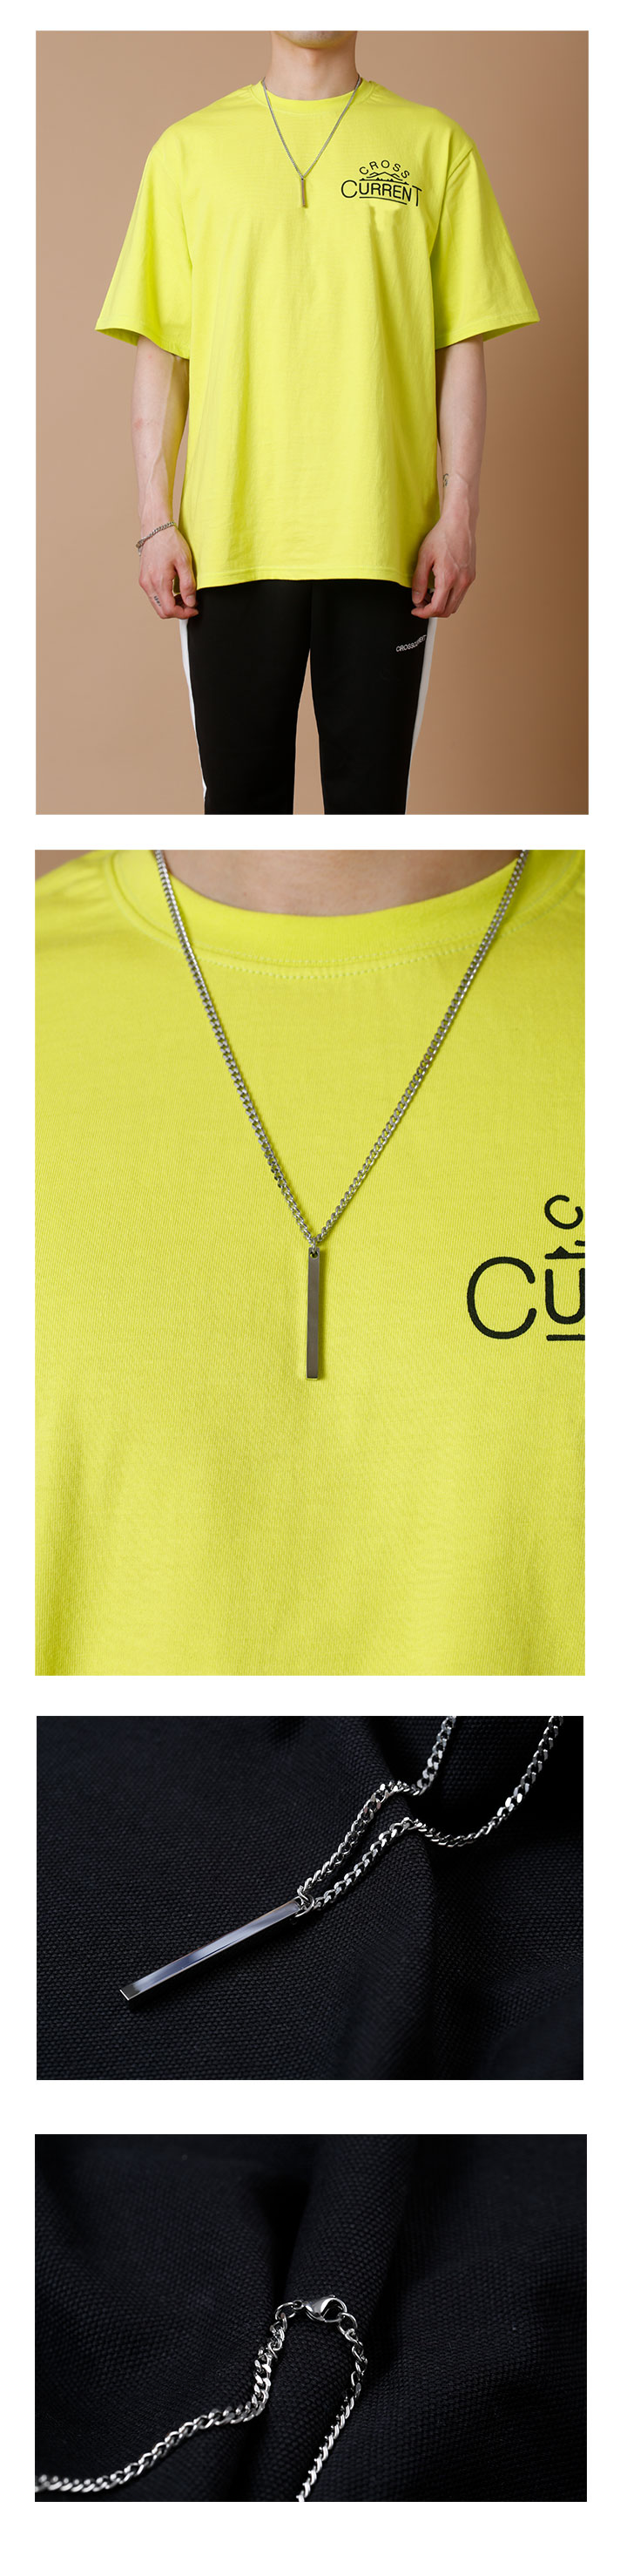 #crct00008-CCT-Stick-Chain-Necklace720.jpg